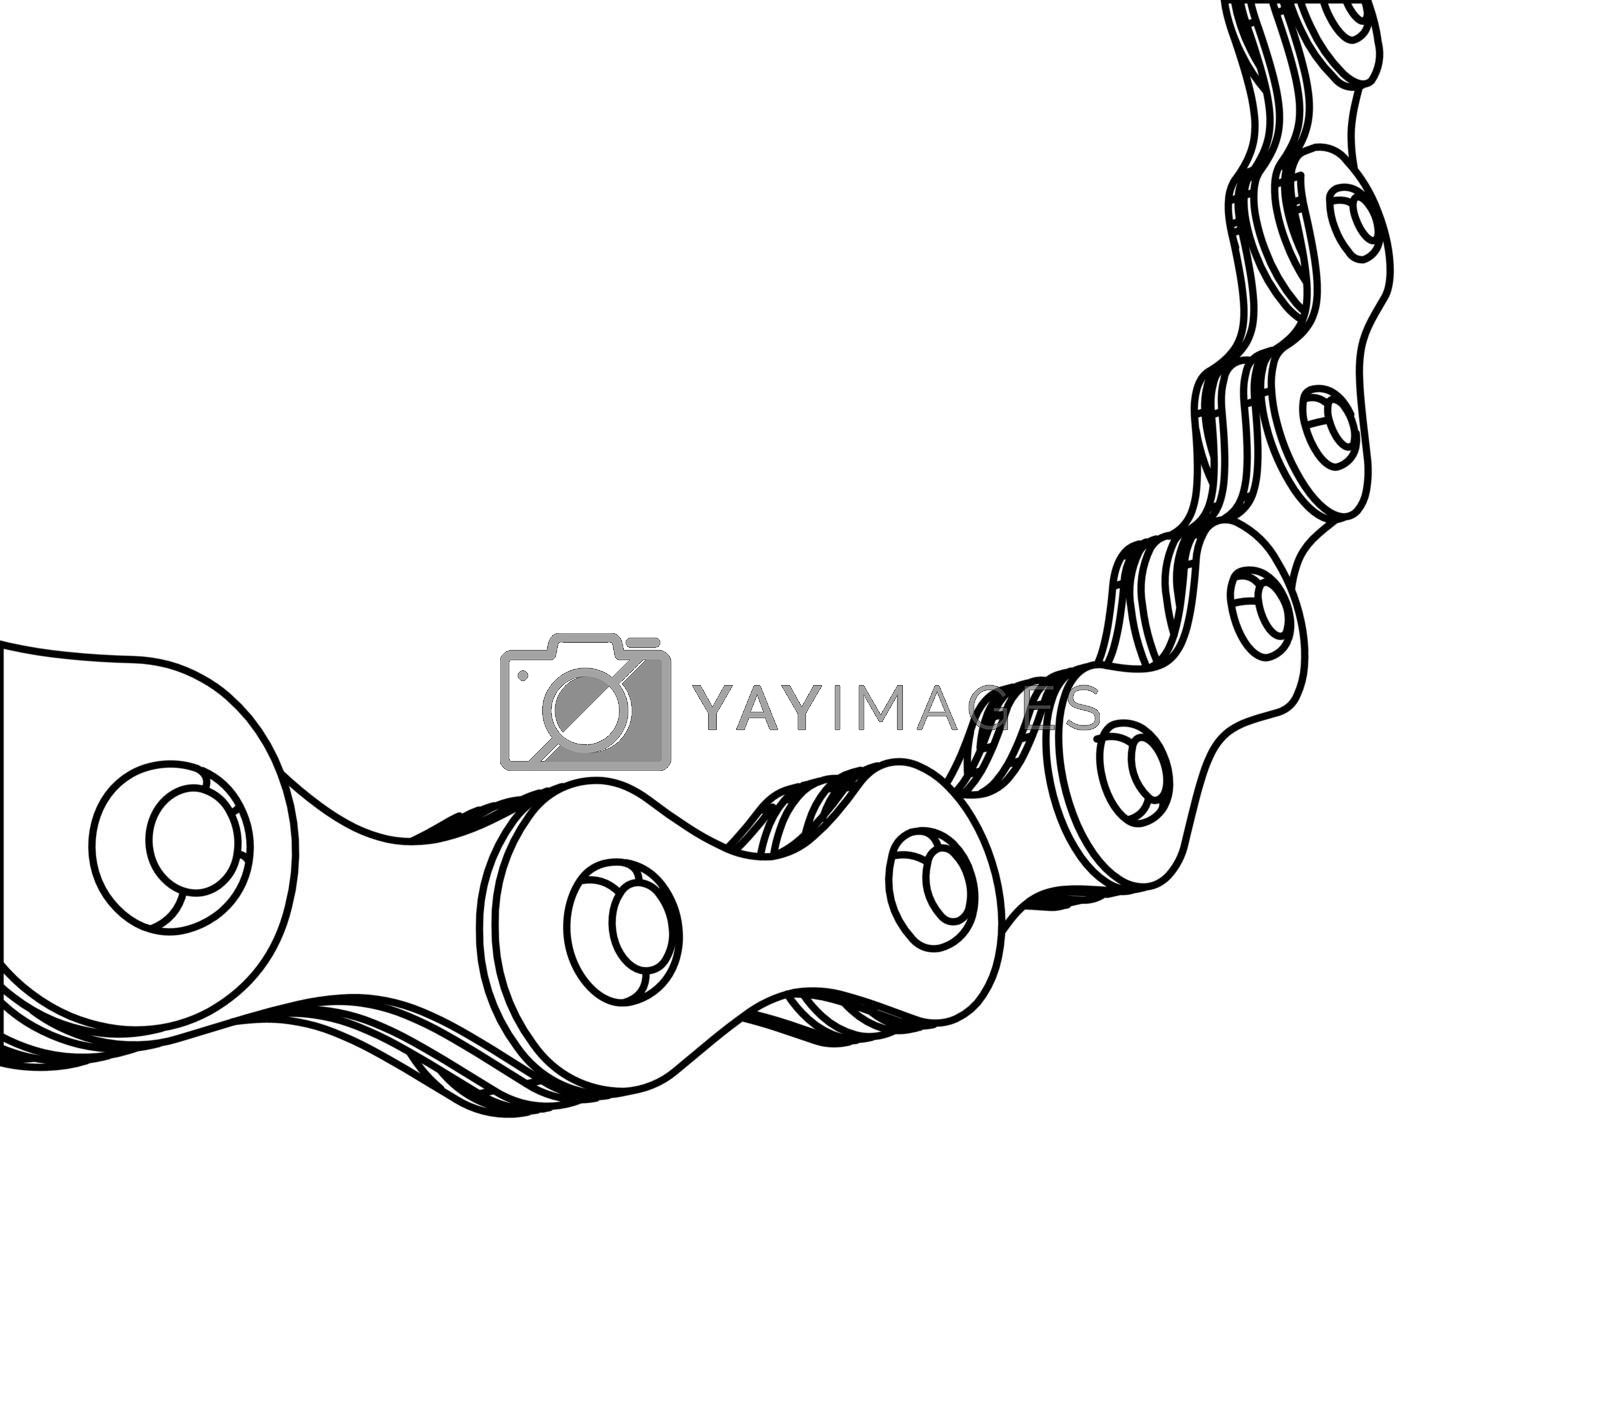 Bicycle chain close-up vector illustration. 3D design by sermax55